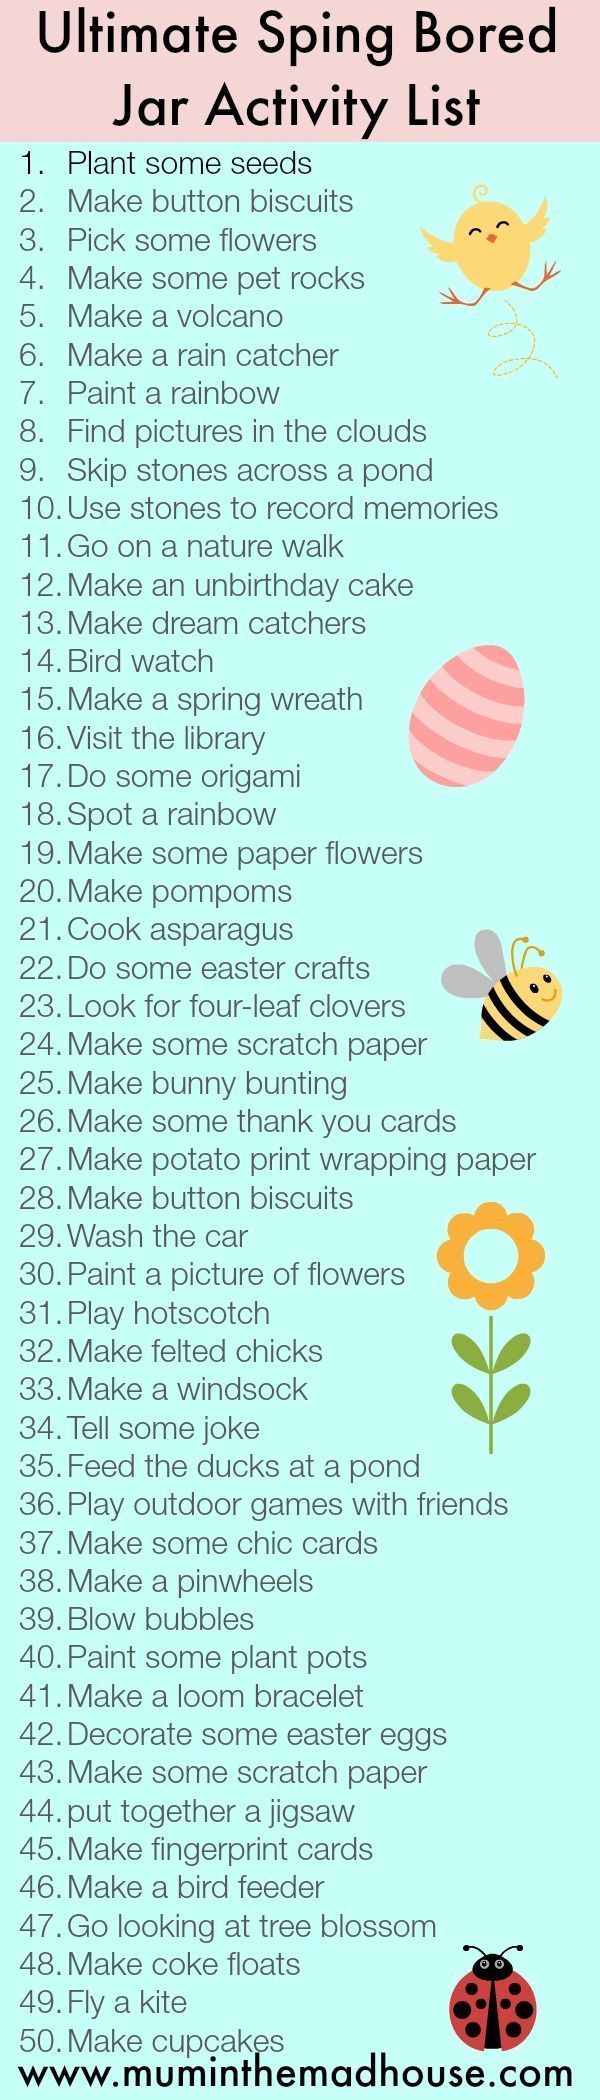 126 best Spring images on Pinterest | Gardening, Kitchens and Baby ...